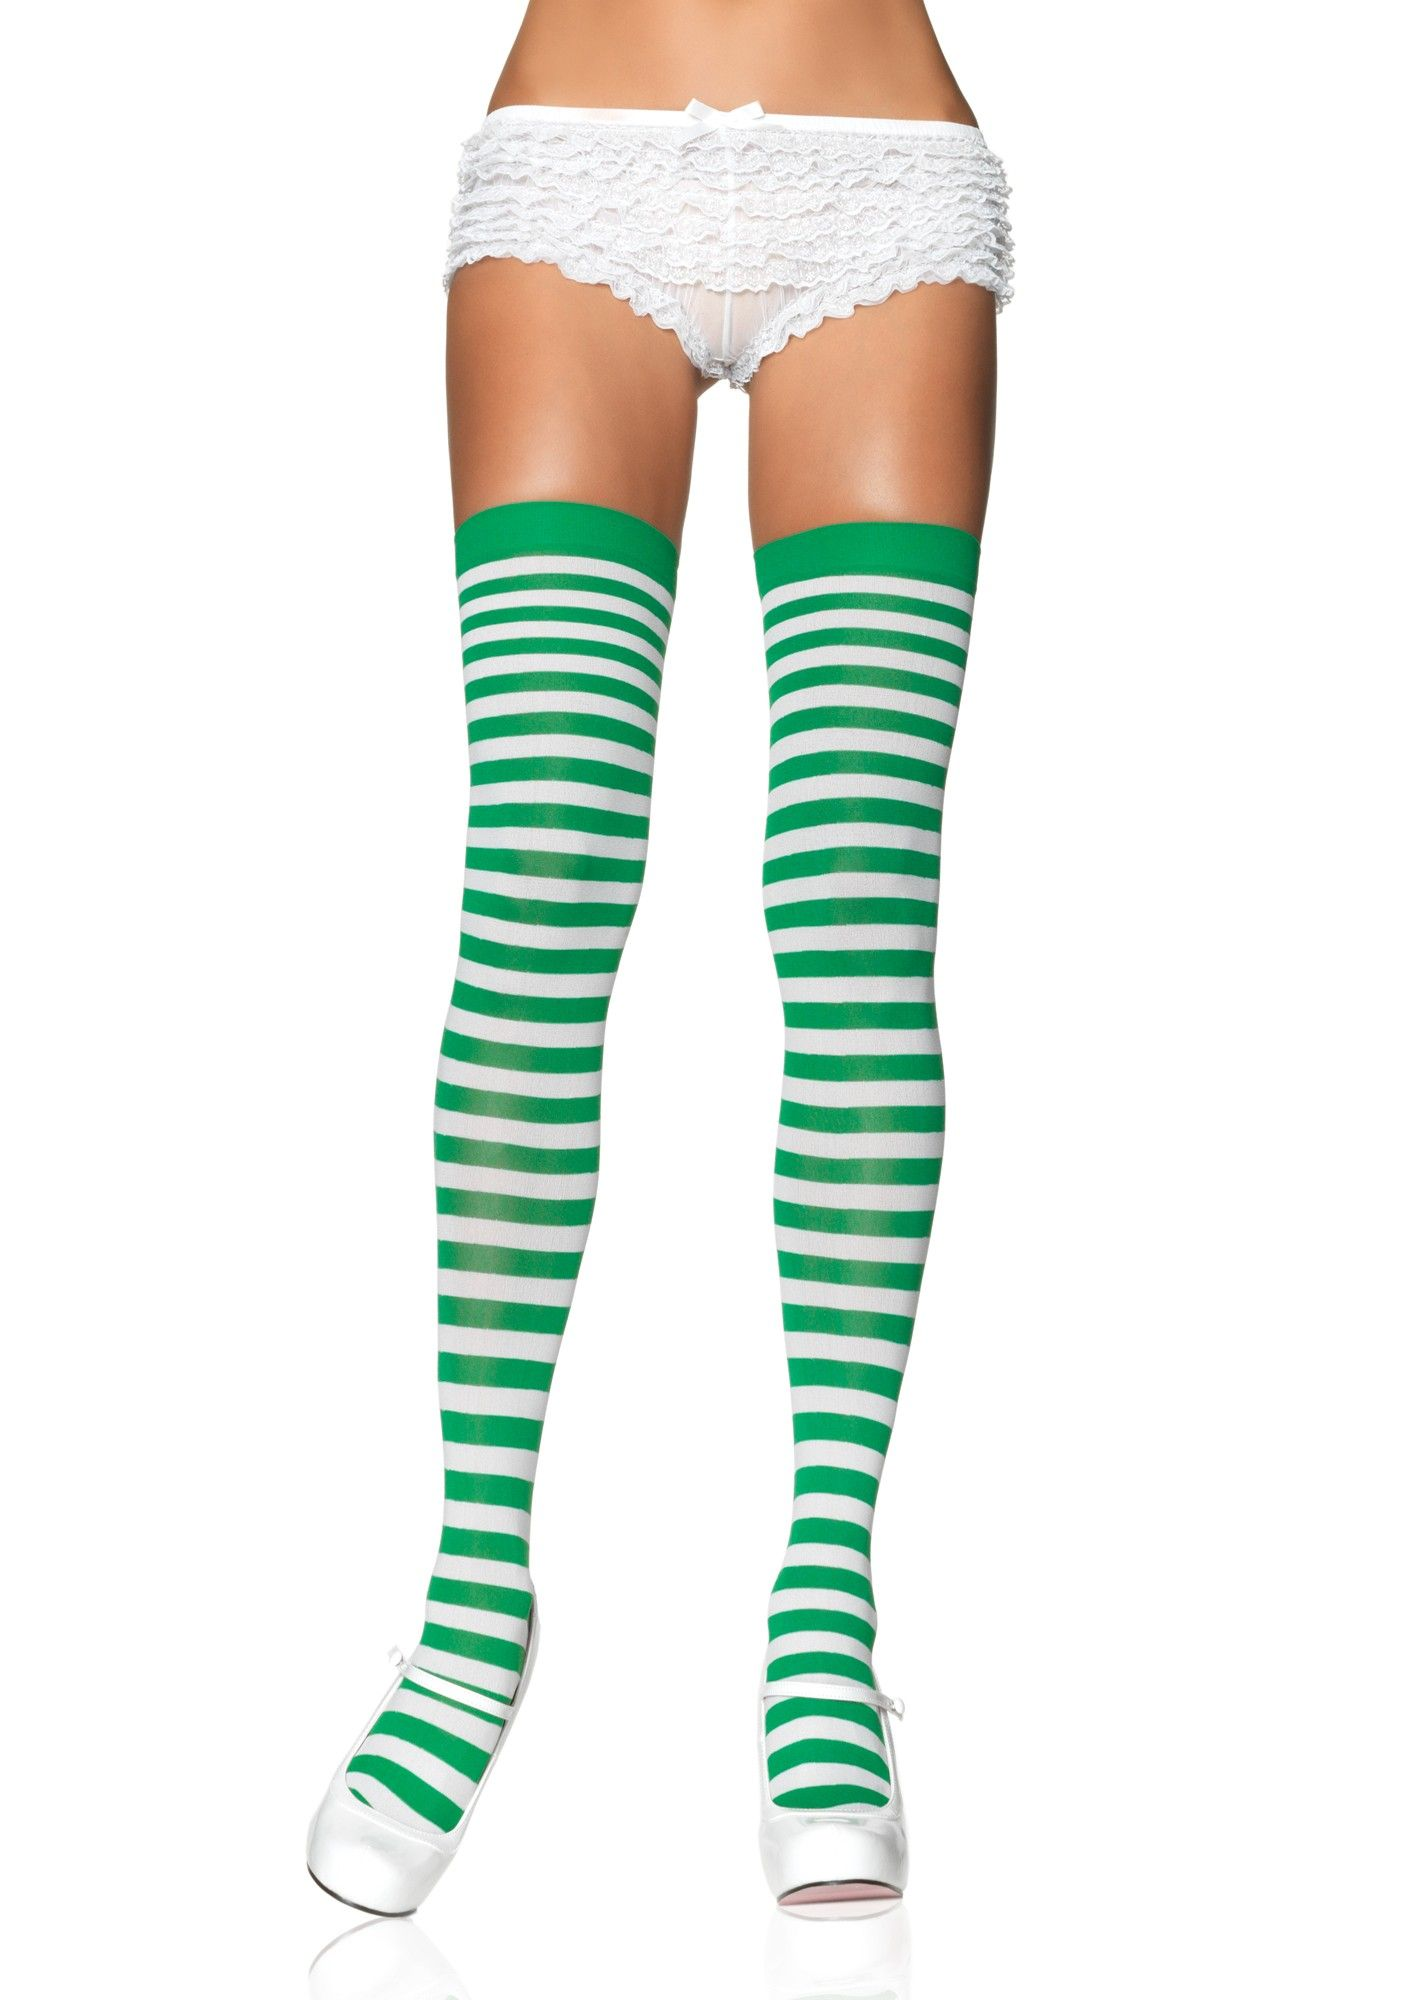 Nylon Striped Tights Assorted Colors